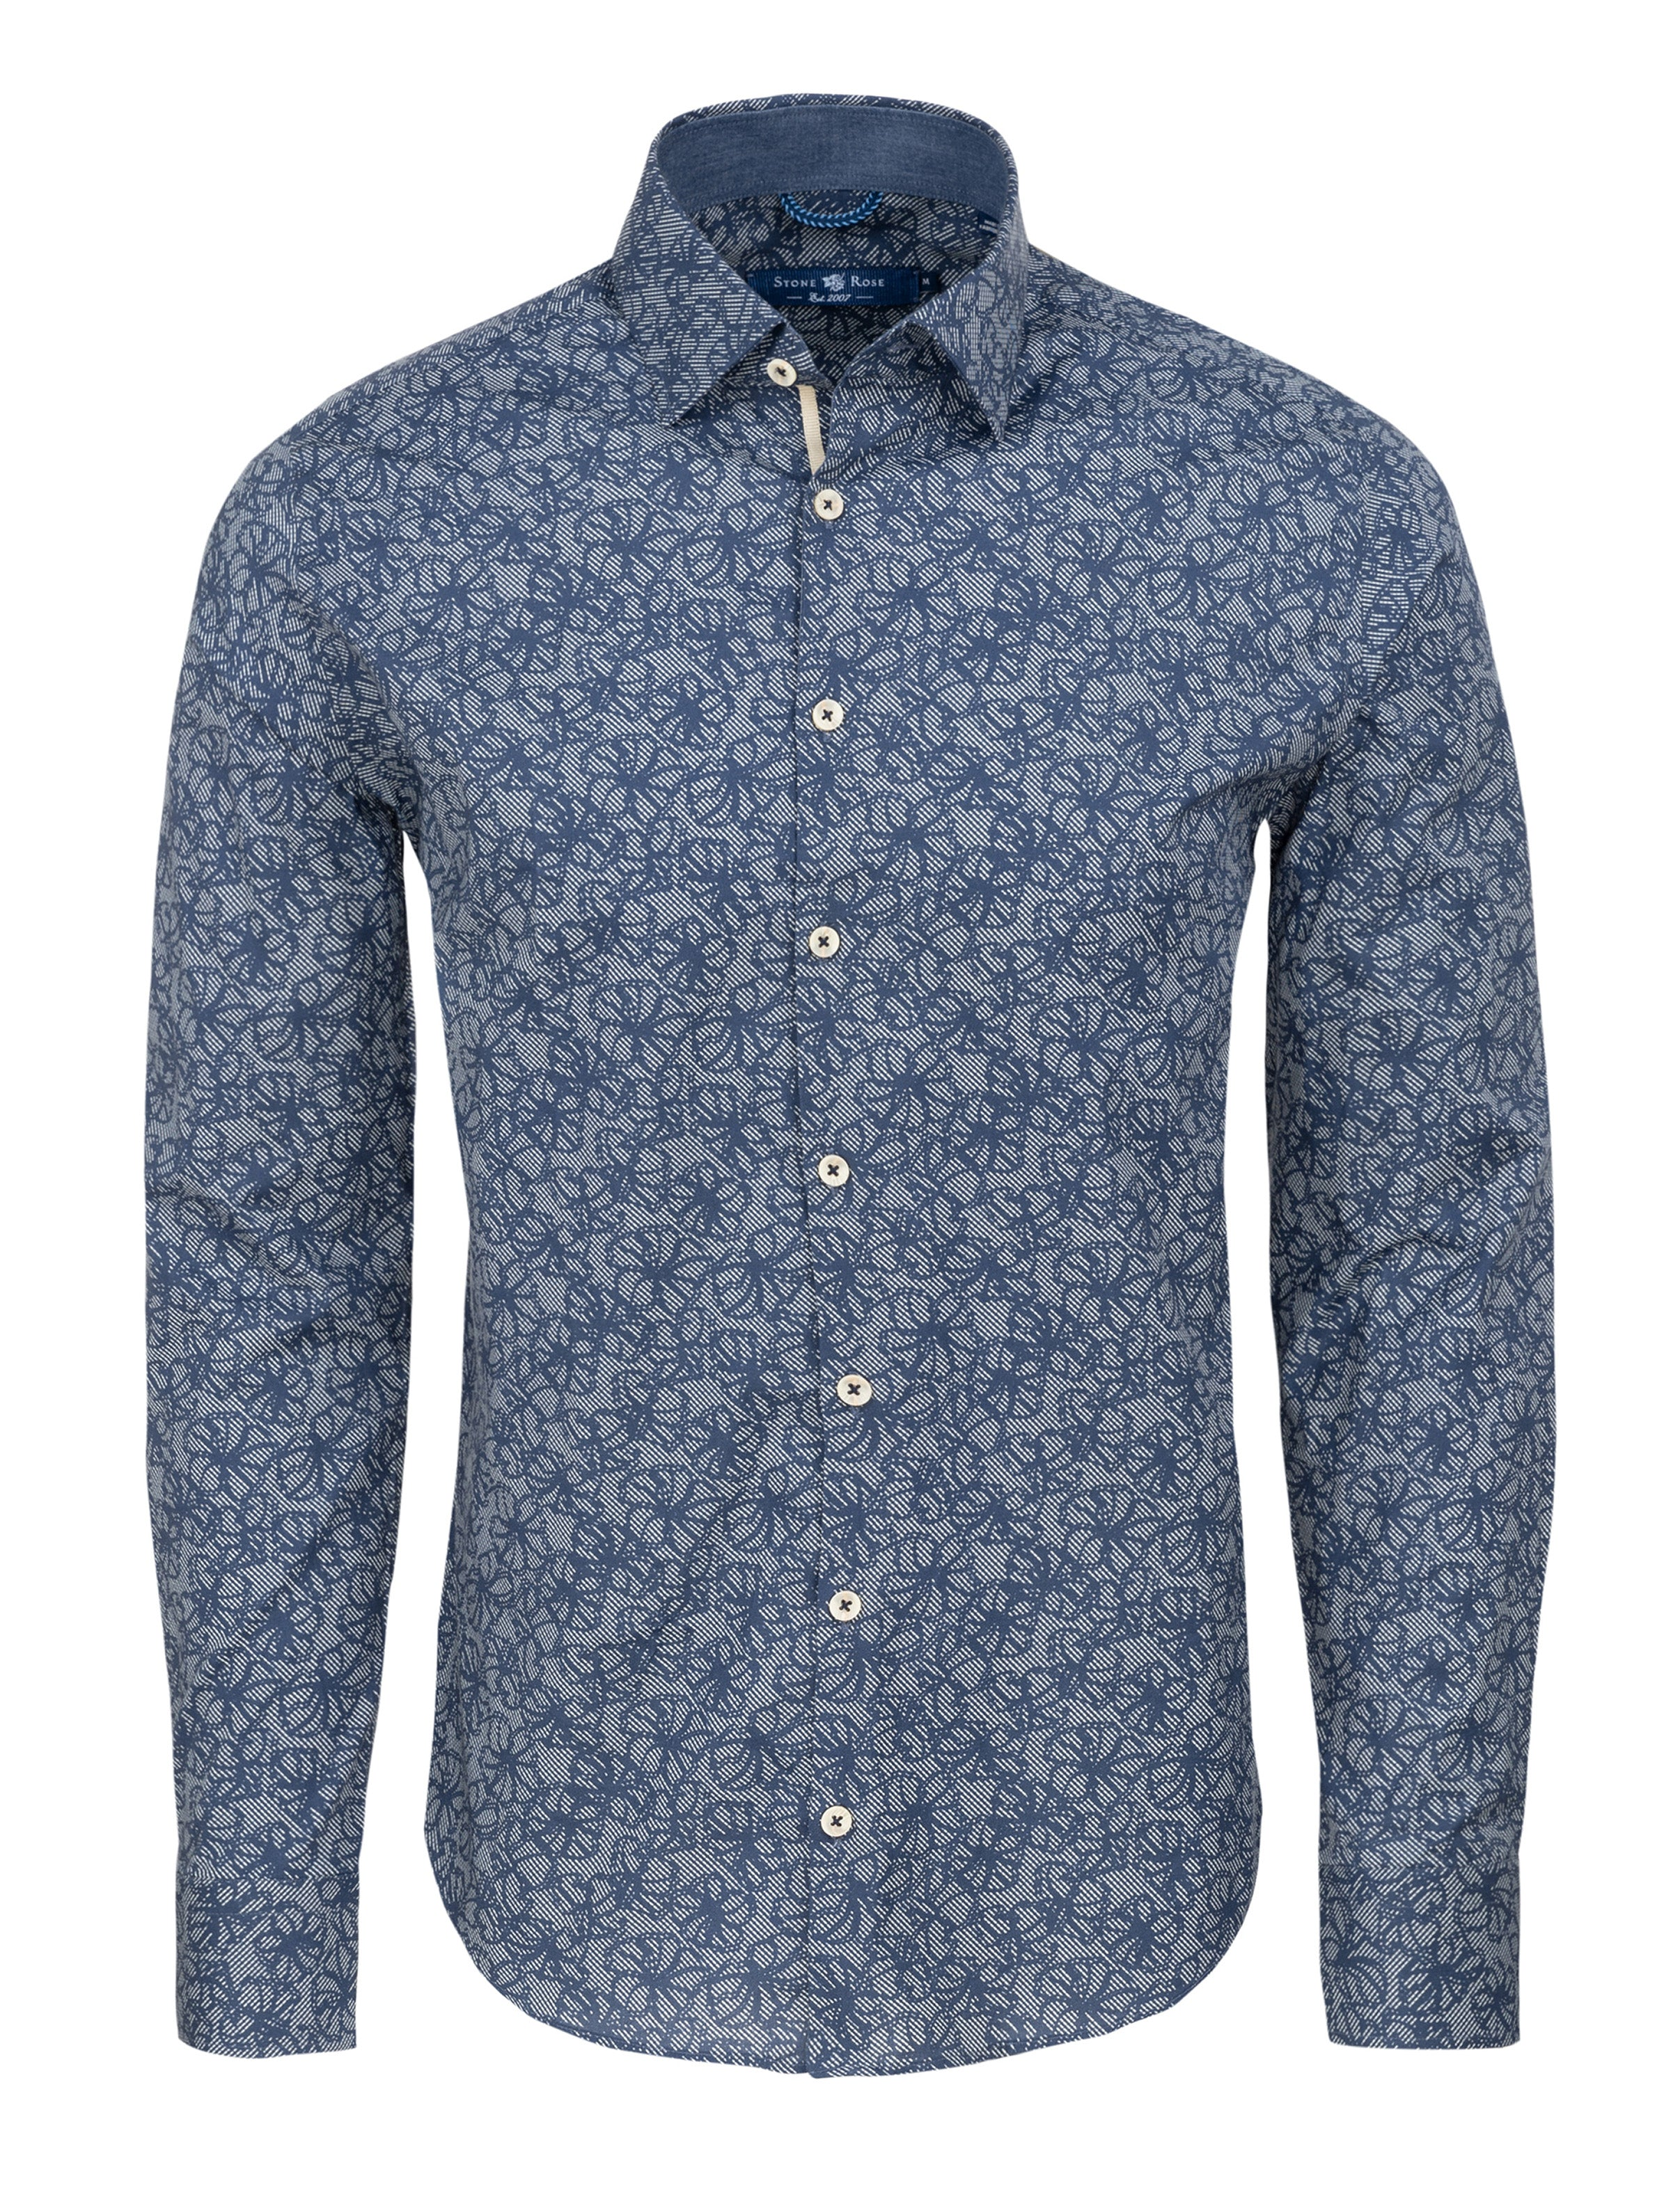 Navy Floral Print Long Sleeve Shirt-Stone Rose